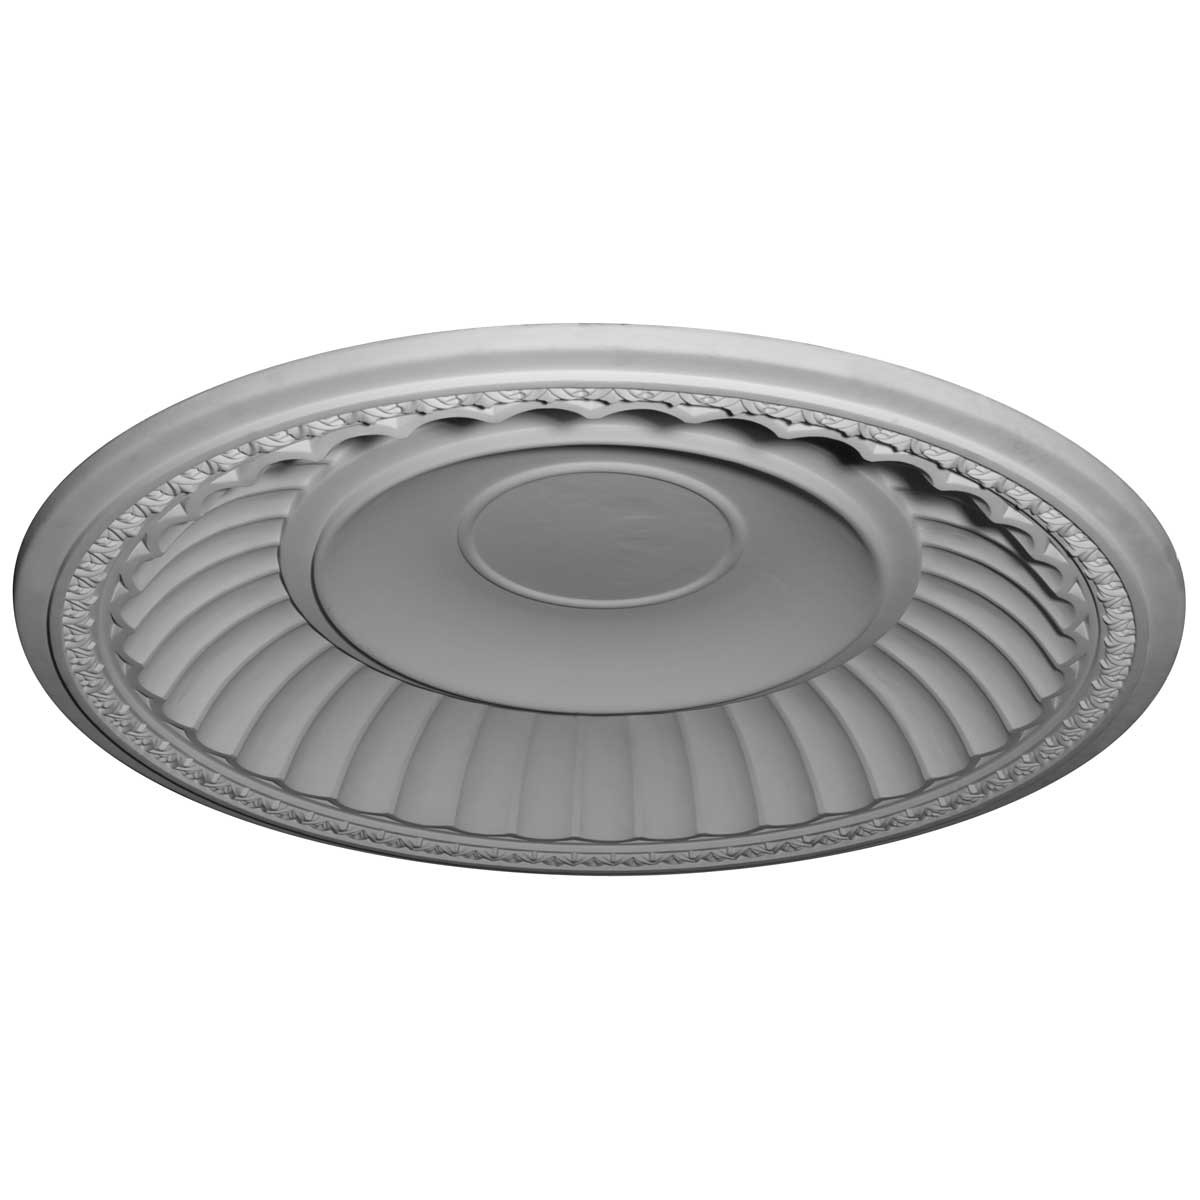 "EM-DOME59DU - 59 1/4""OD x 50 1/8""ID x 8 3/8""D Dublin Recessed Mount Ceiling Dome (51 1/4""Diameter x 9""D Rough Opening)"